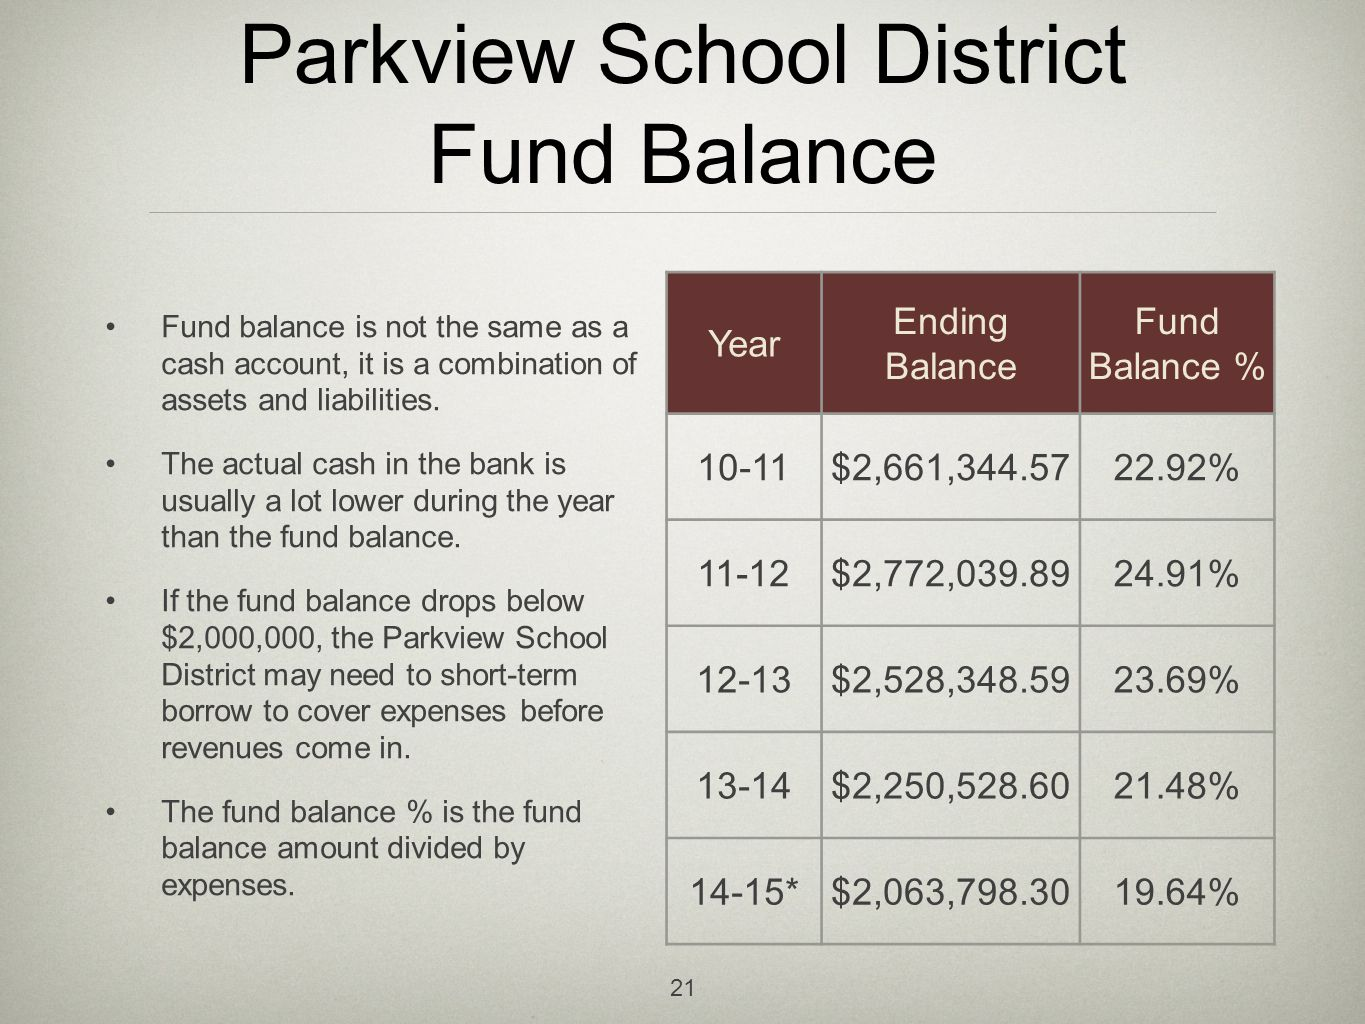 Parkview School District Fund Balance Fund balance is not the same as a cash account, it is a combination of assets and liabilities.